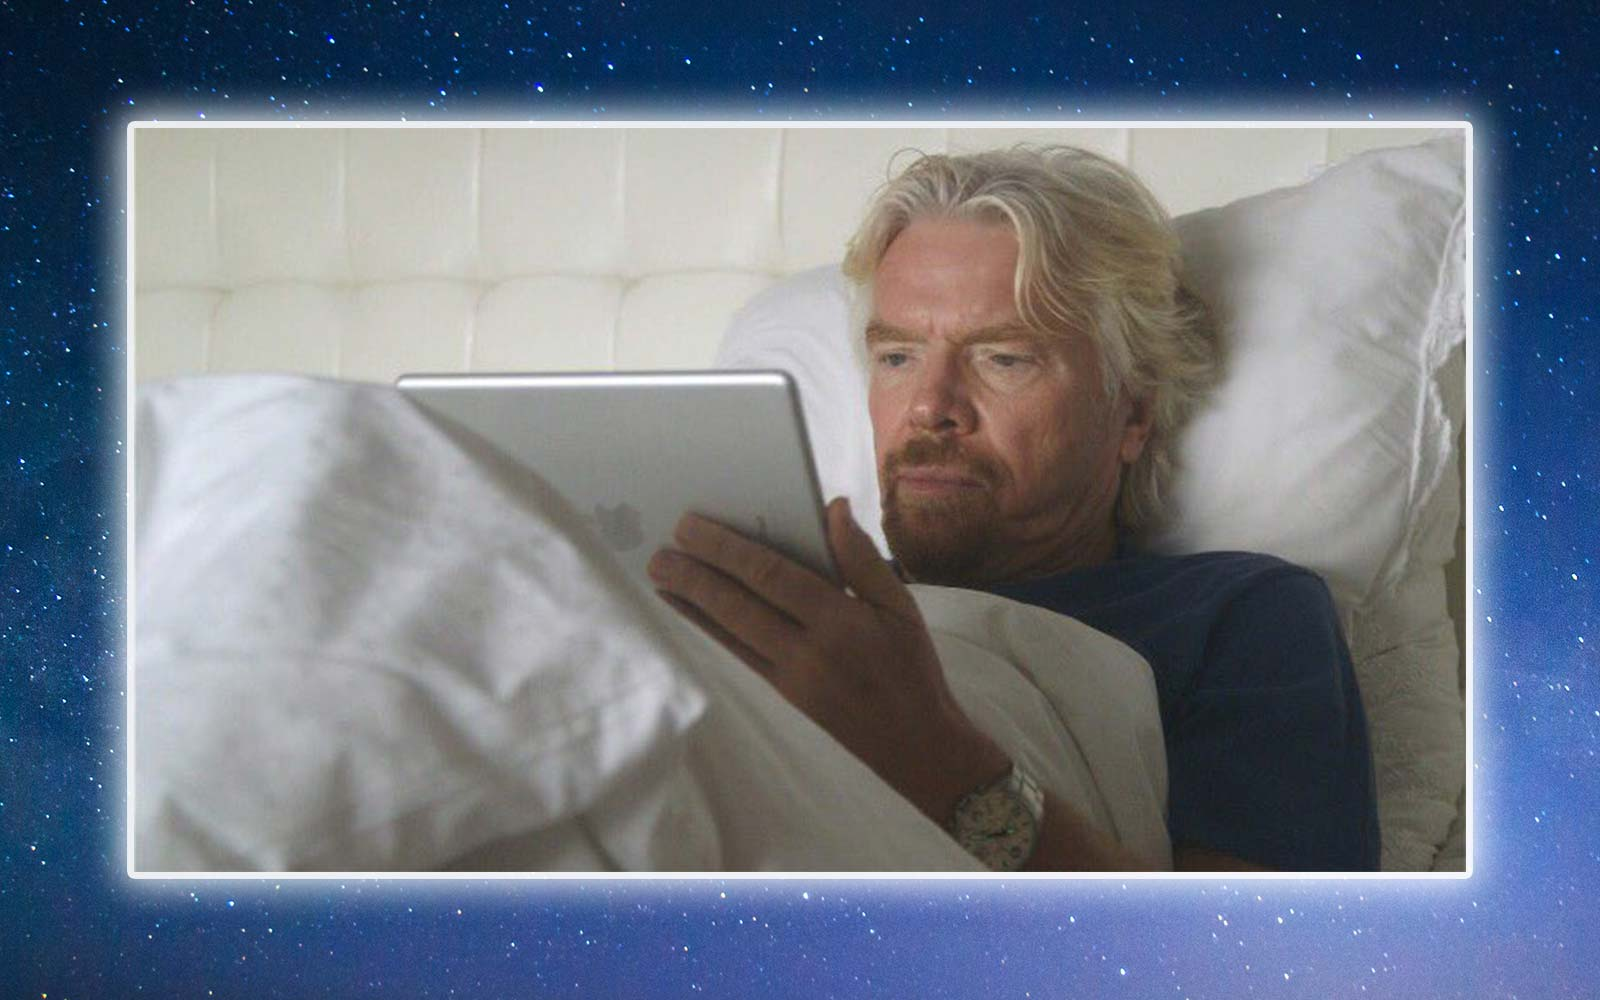 Richard Branson Nighttime Bed Routine